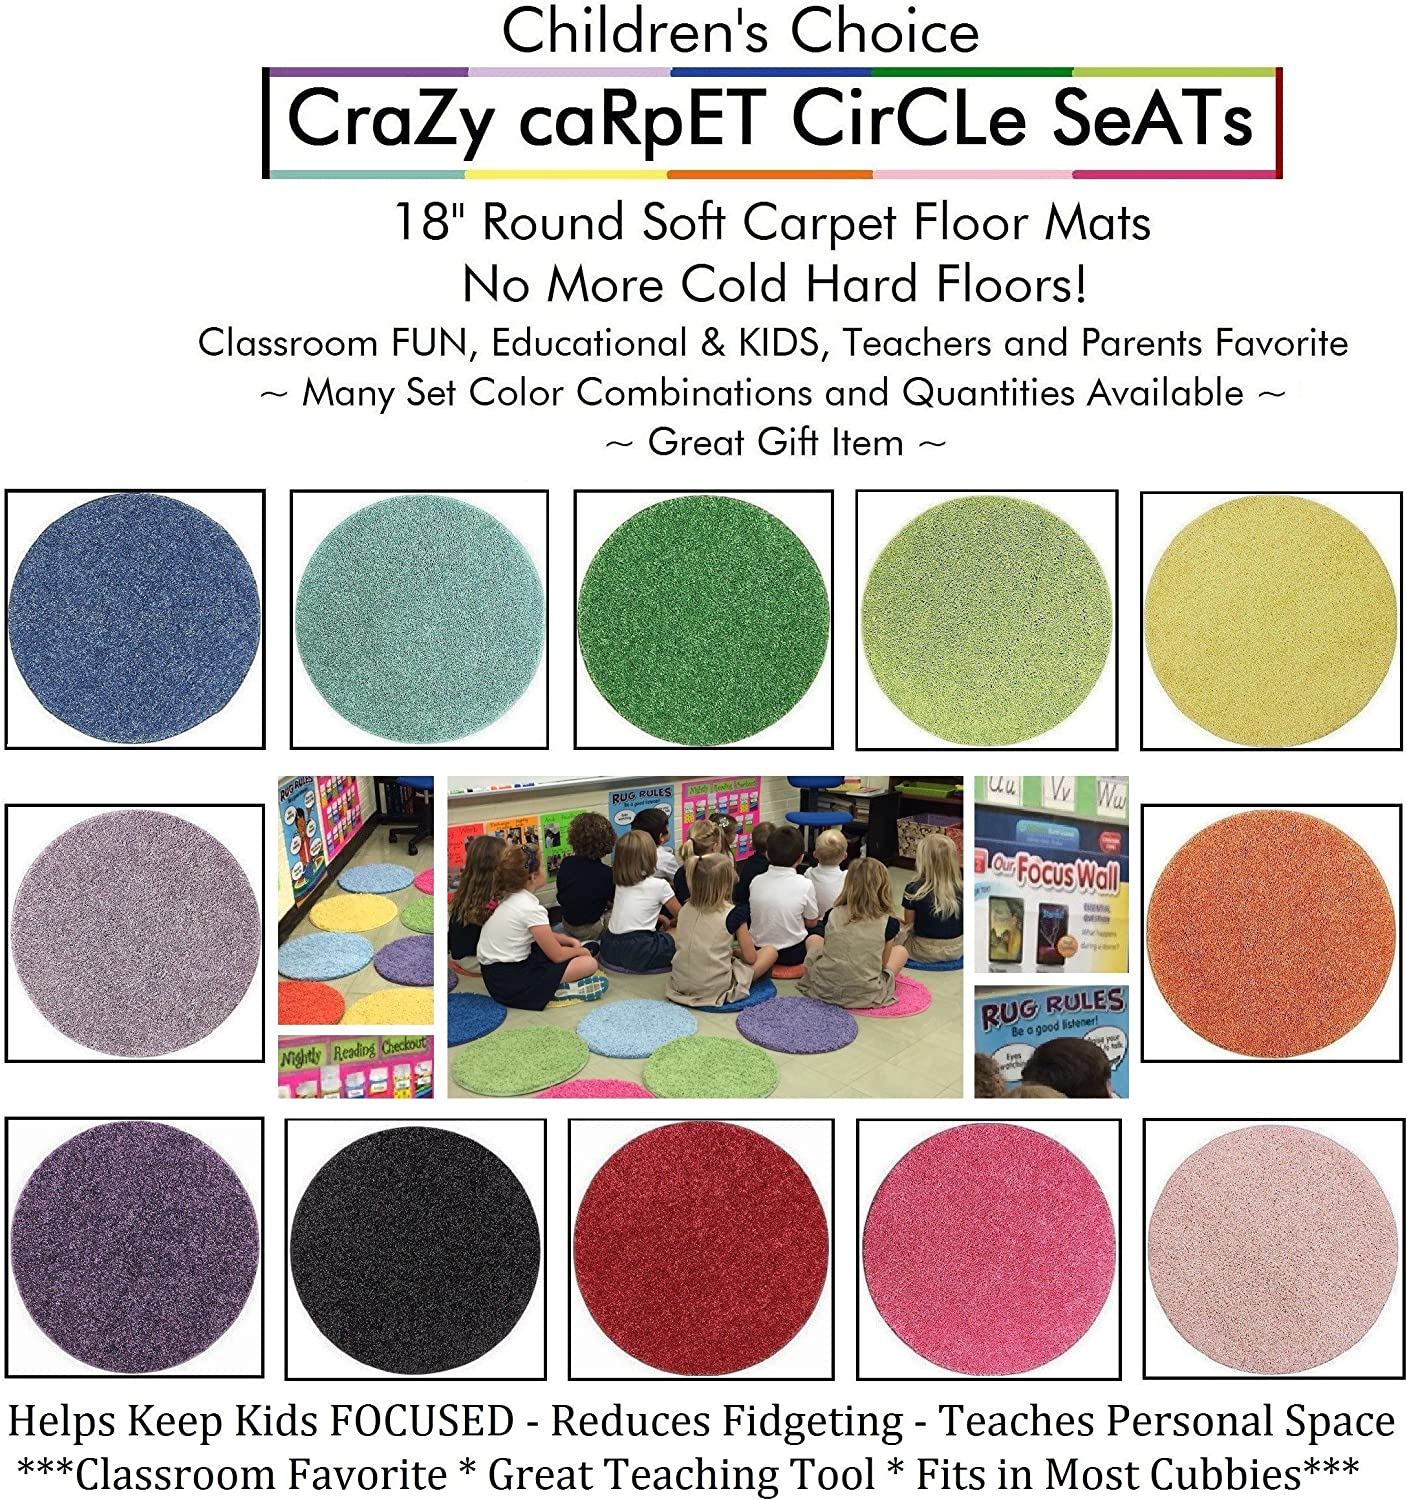 10 Sets von 12 Pc - Rainbow Kids Crazy Carpet Circle Seats 18 Round Soft Warm Floor Mat - Cushions | Classroom, Story Time, Group Activity, Time-aus Spot Marker und Fun. Zuhause Bedroom & spielen Areas &Hellip;